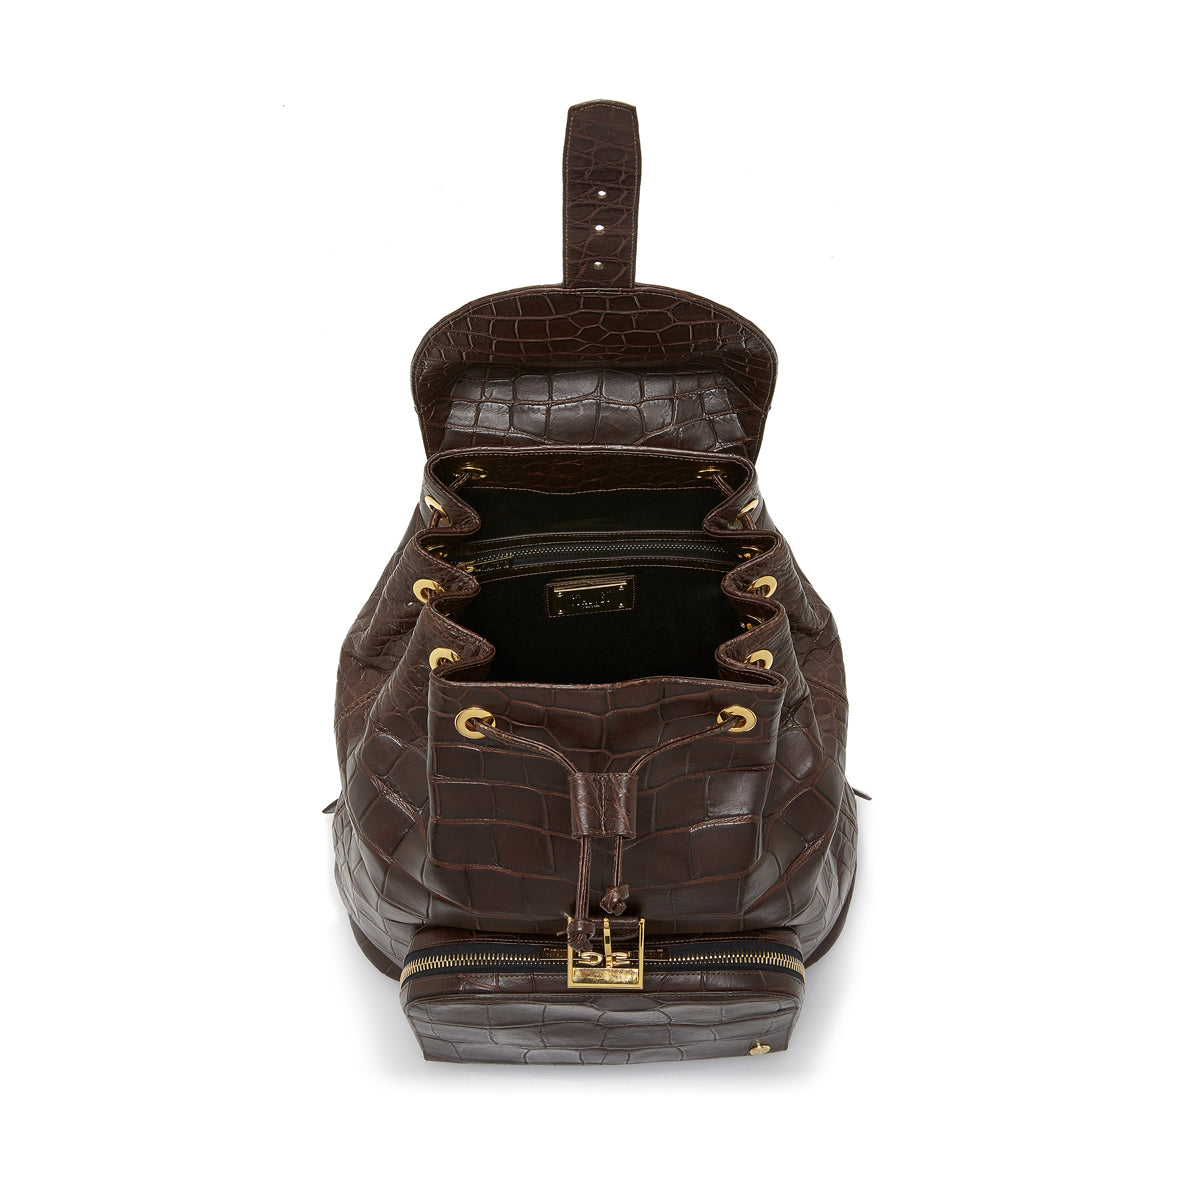 Sun Backpack - Brown Alligator